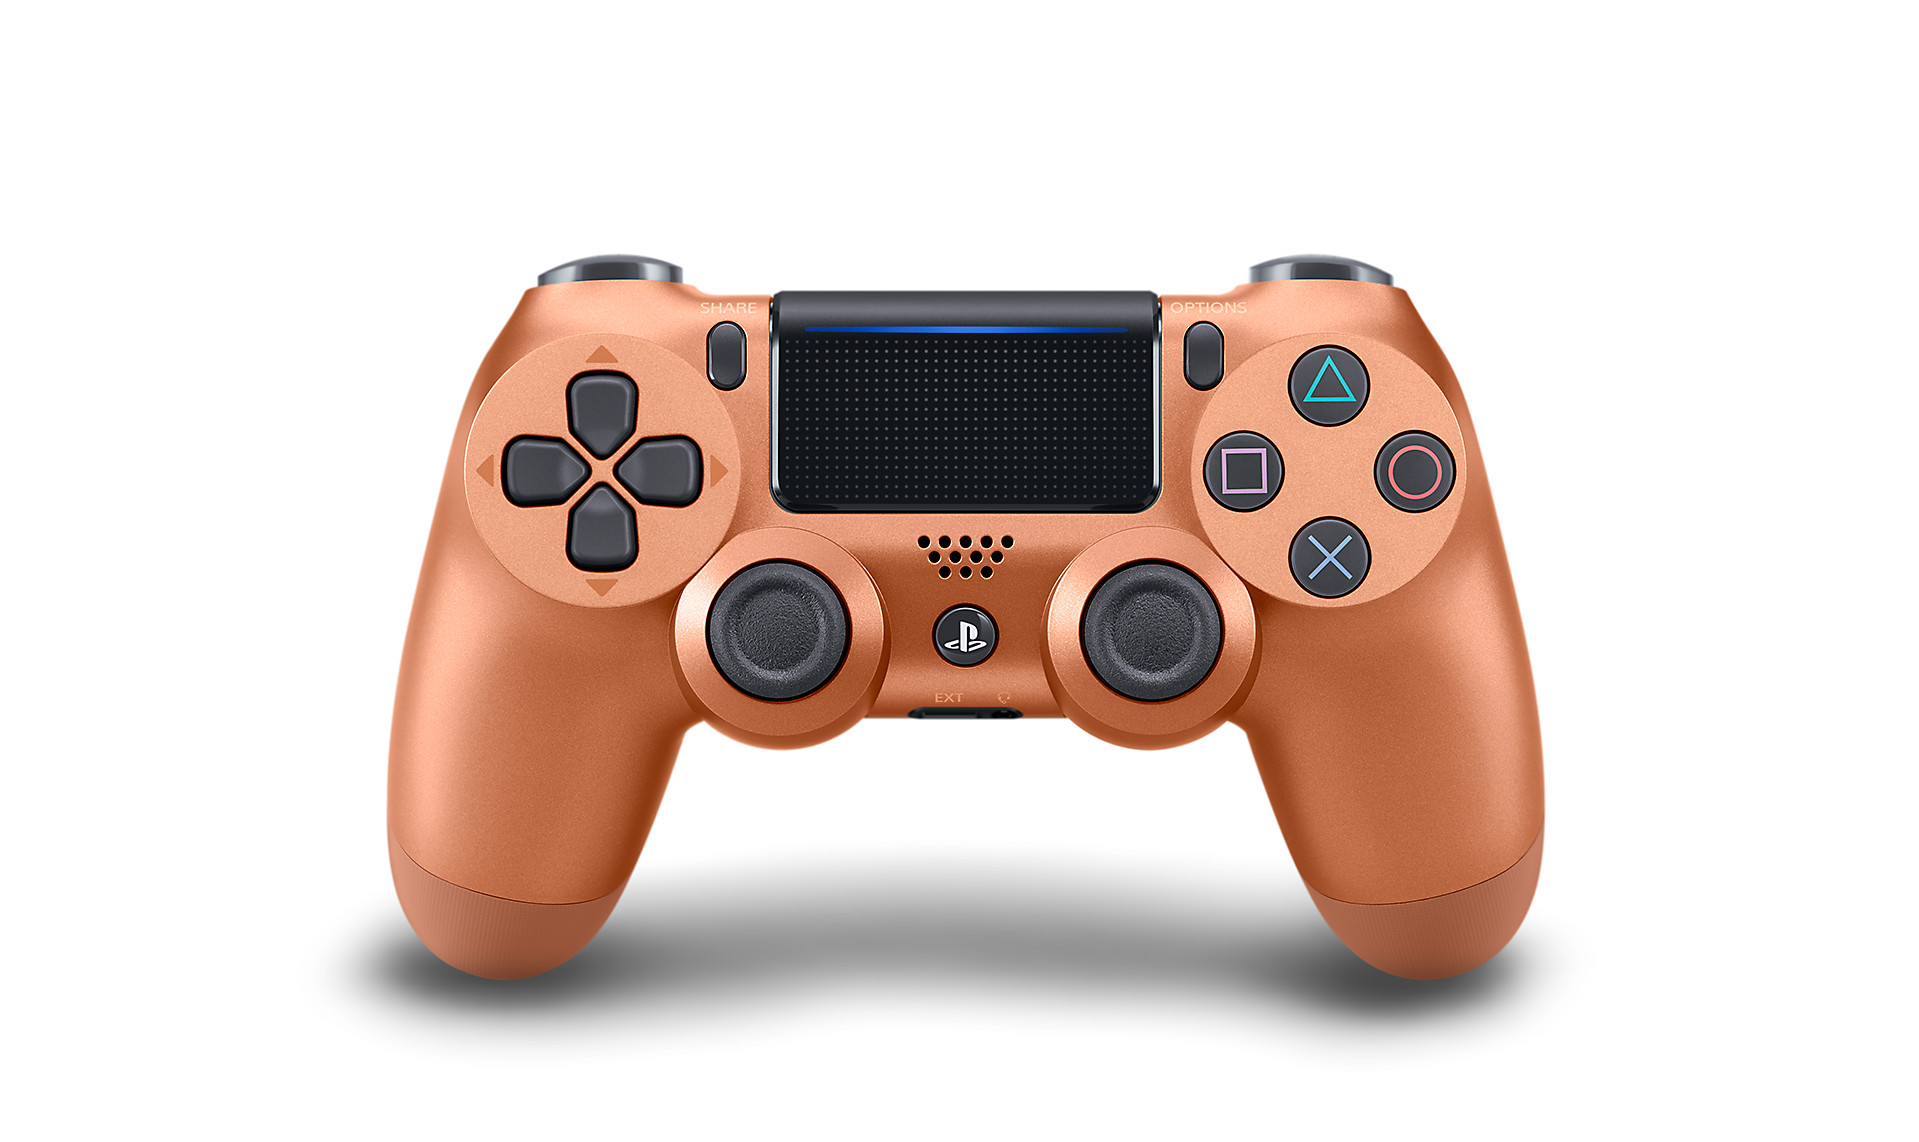 铜色DUALSHOCK 4 - PlayStation周边设备